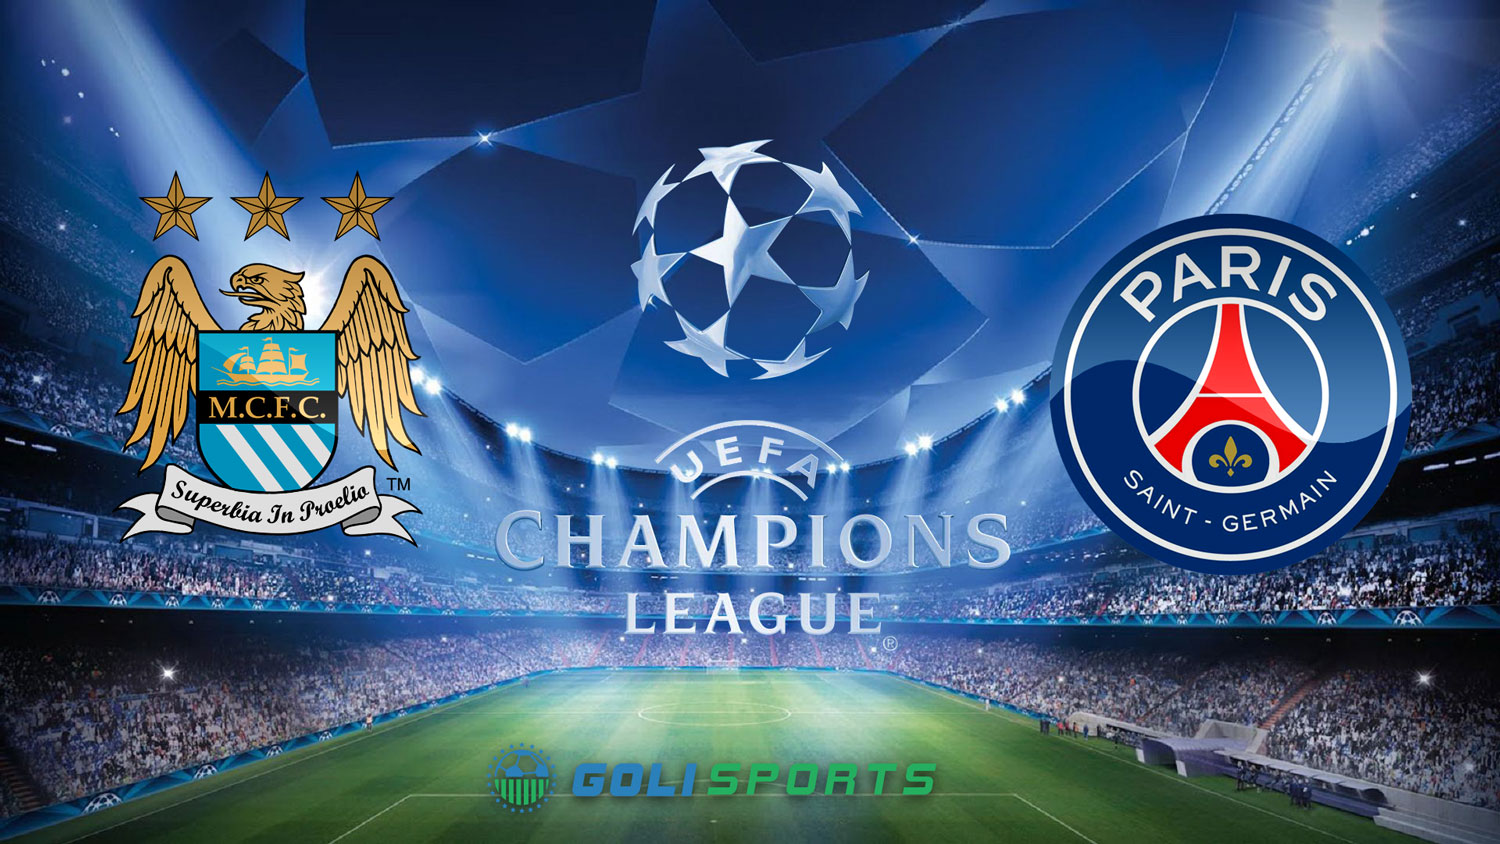 Champions League Man City VS PSG and Madrid VS Wolfsburg - Goli Sports